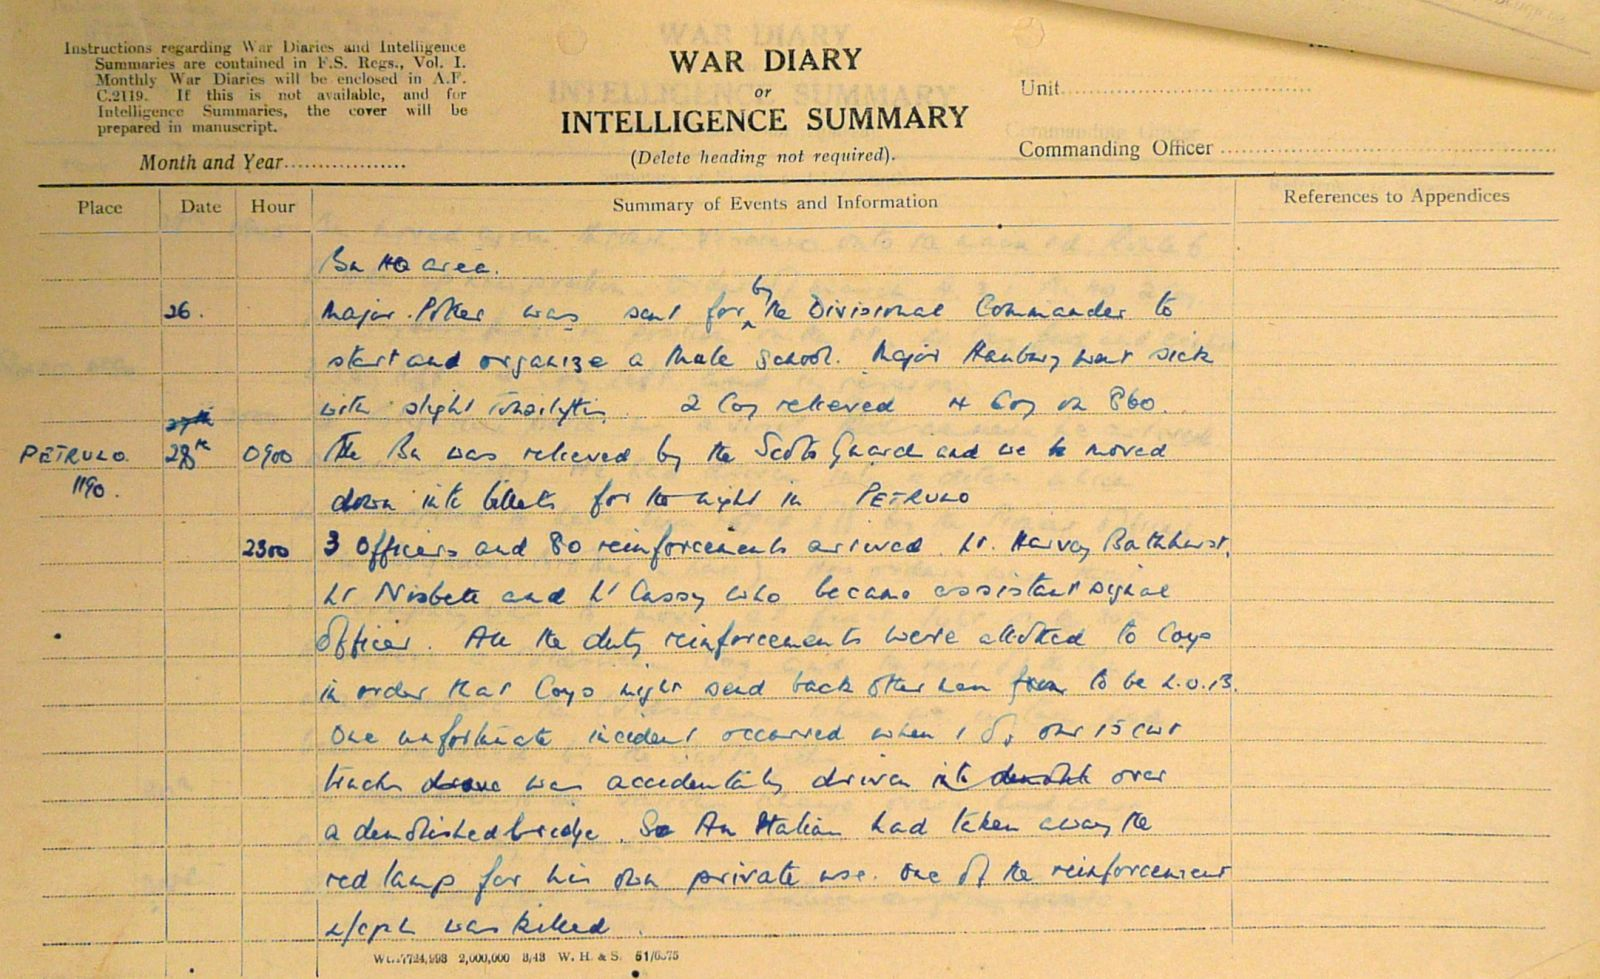 October War Diary, 6th Motor Battalion Grenadier Guards, 1943